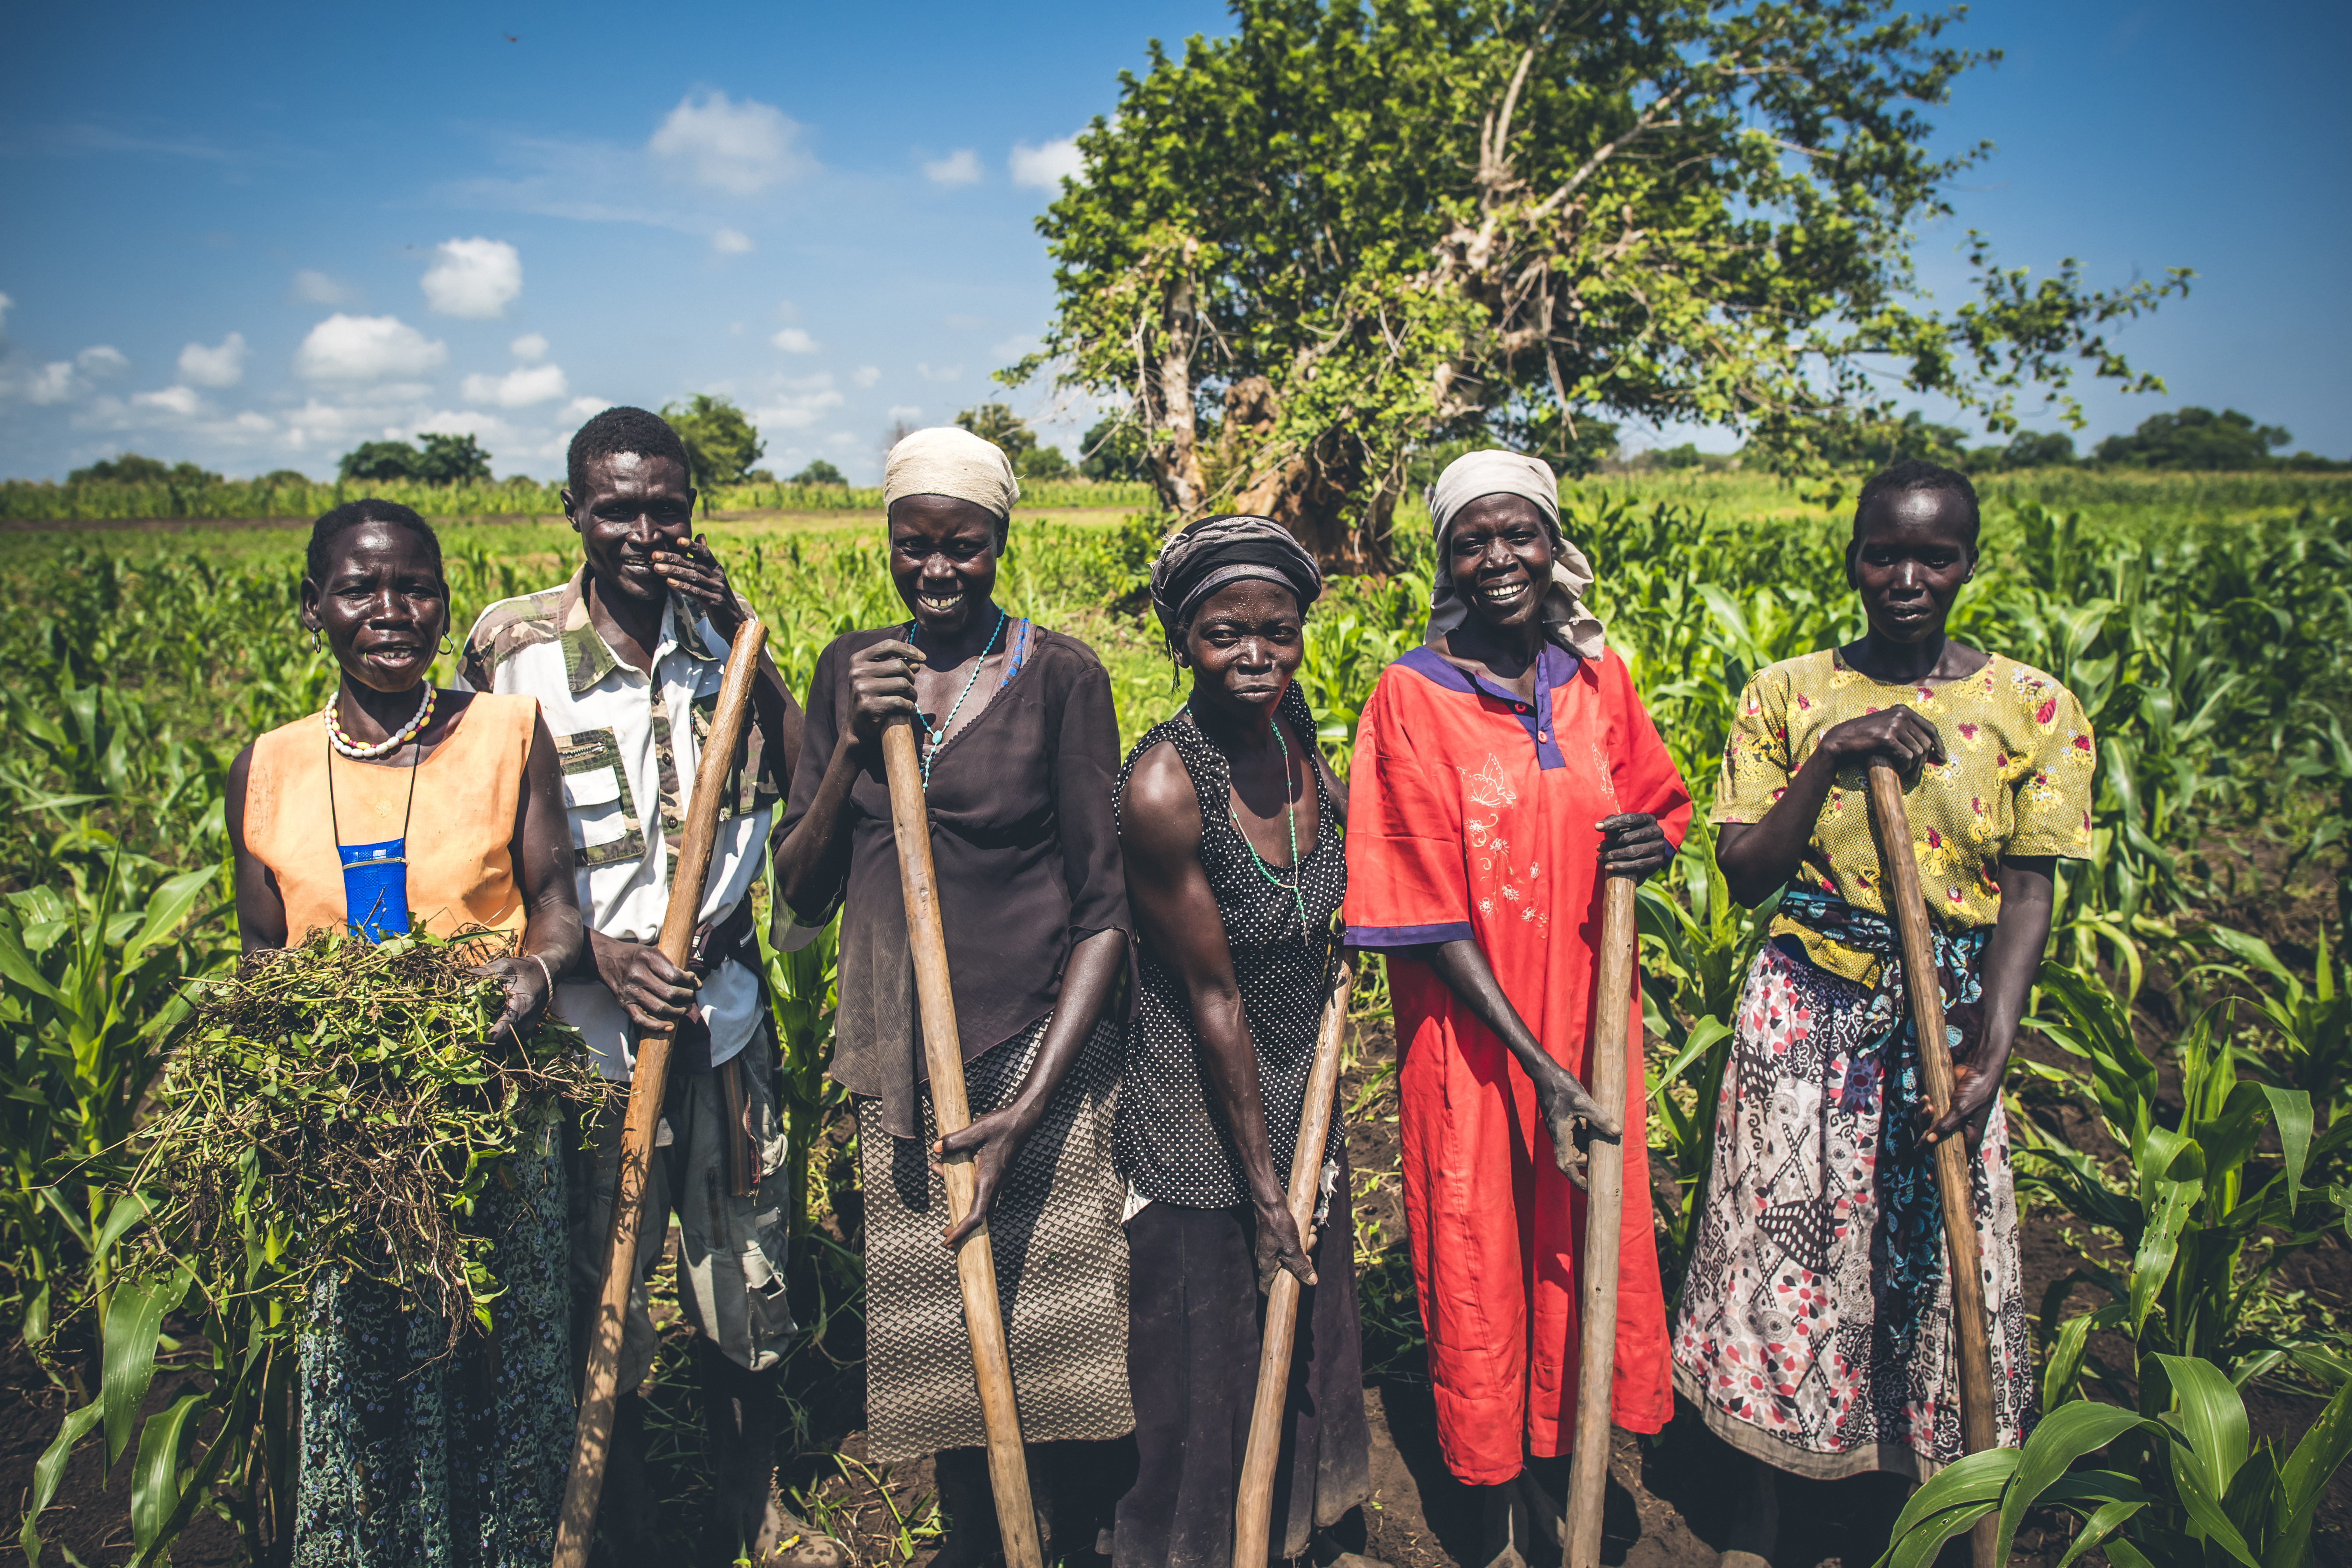 A group of South Sudan refugees work on a plot of land in Uganda.